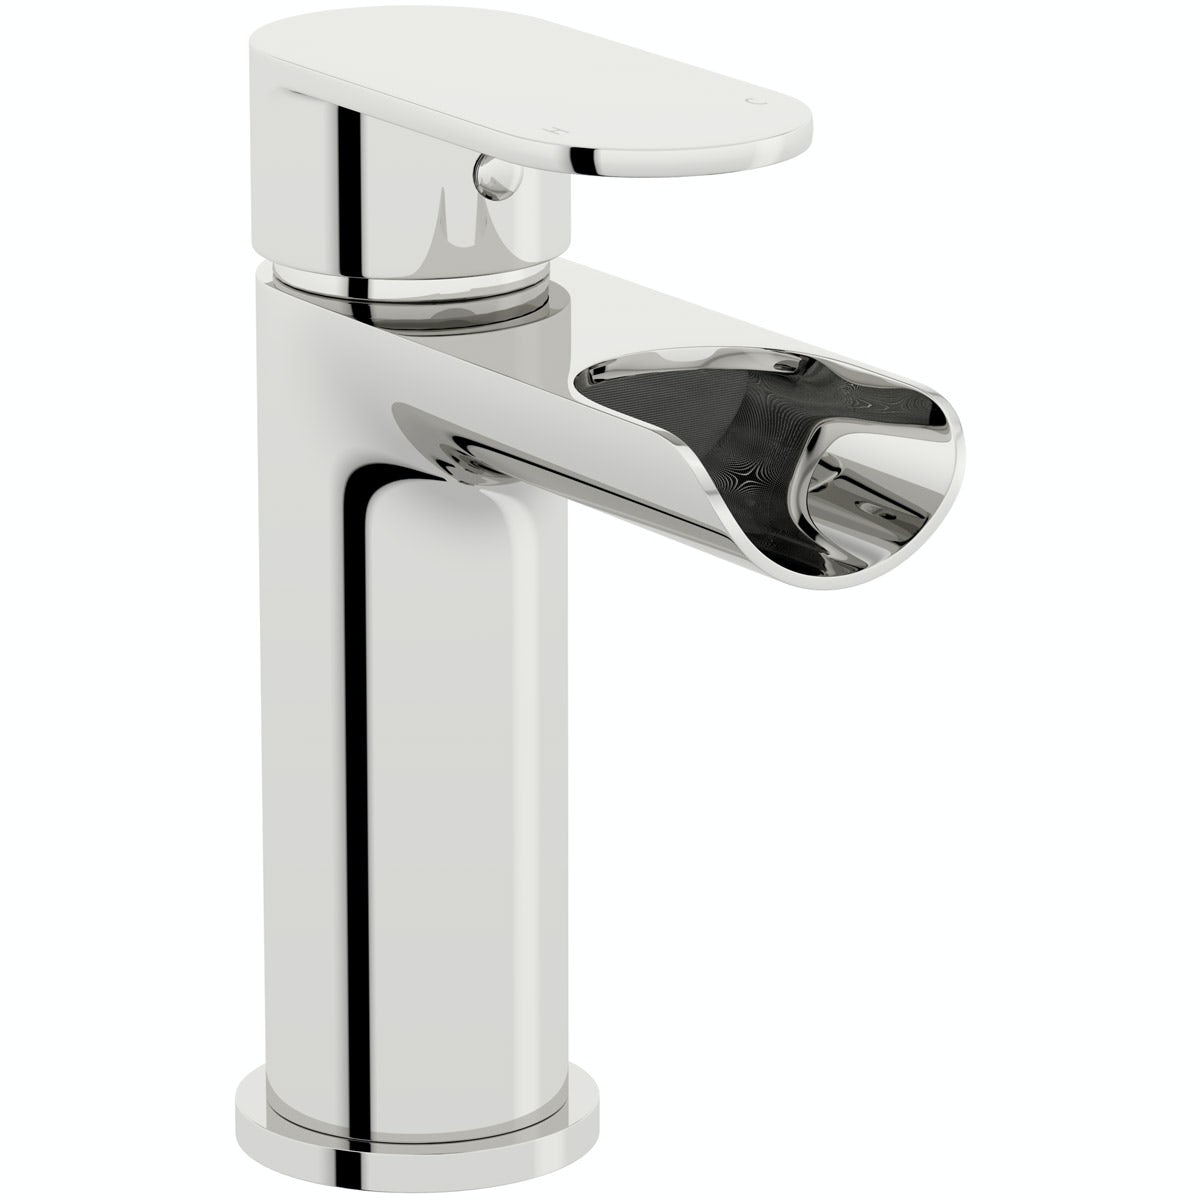 Eden waterfall basin mixer tap